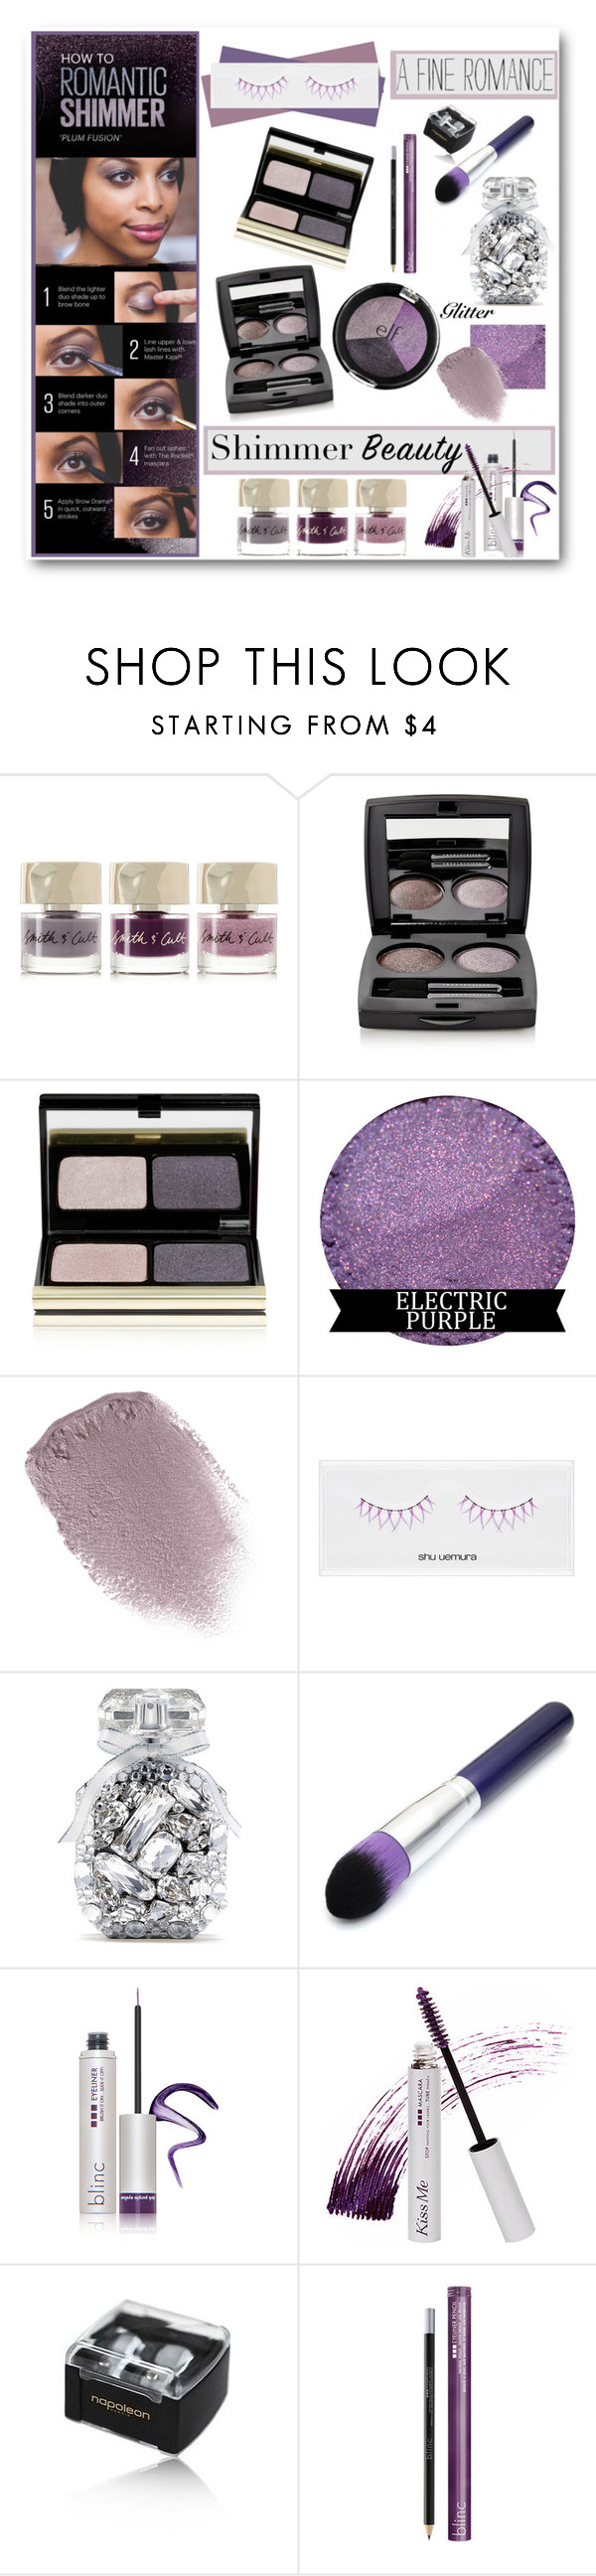 """""""Romantic Shimmer"""" by brendariley-1 ❤ liked on Polyvore featuring beauty, Smith & Cult, Chantecaille, Kevyn Aucoin, Obsessive Compulsive Cosmetics, shu uemura, Victoria's Secret, Blinc, Napoleon Perdis and shimmerbeauty"""